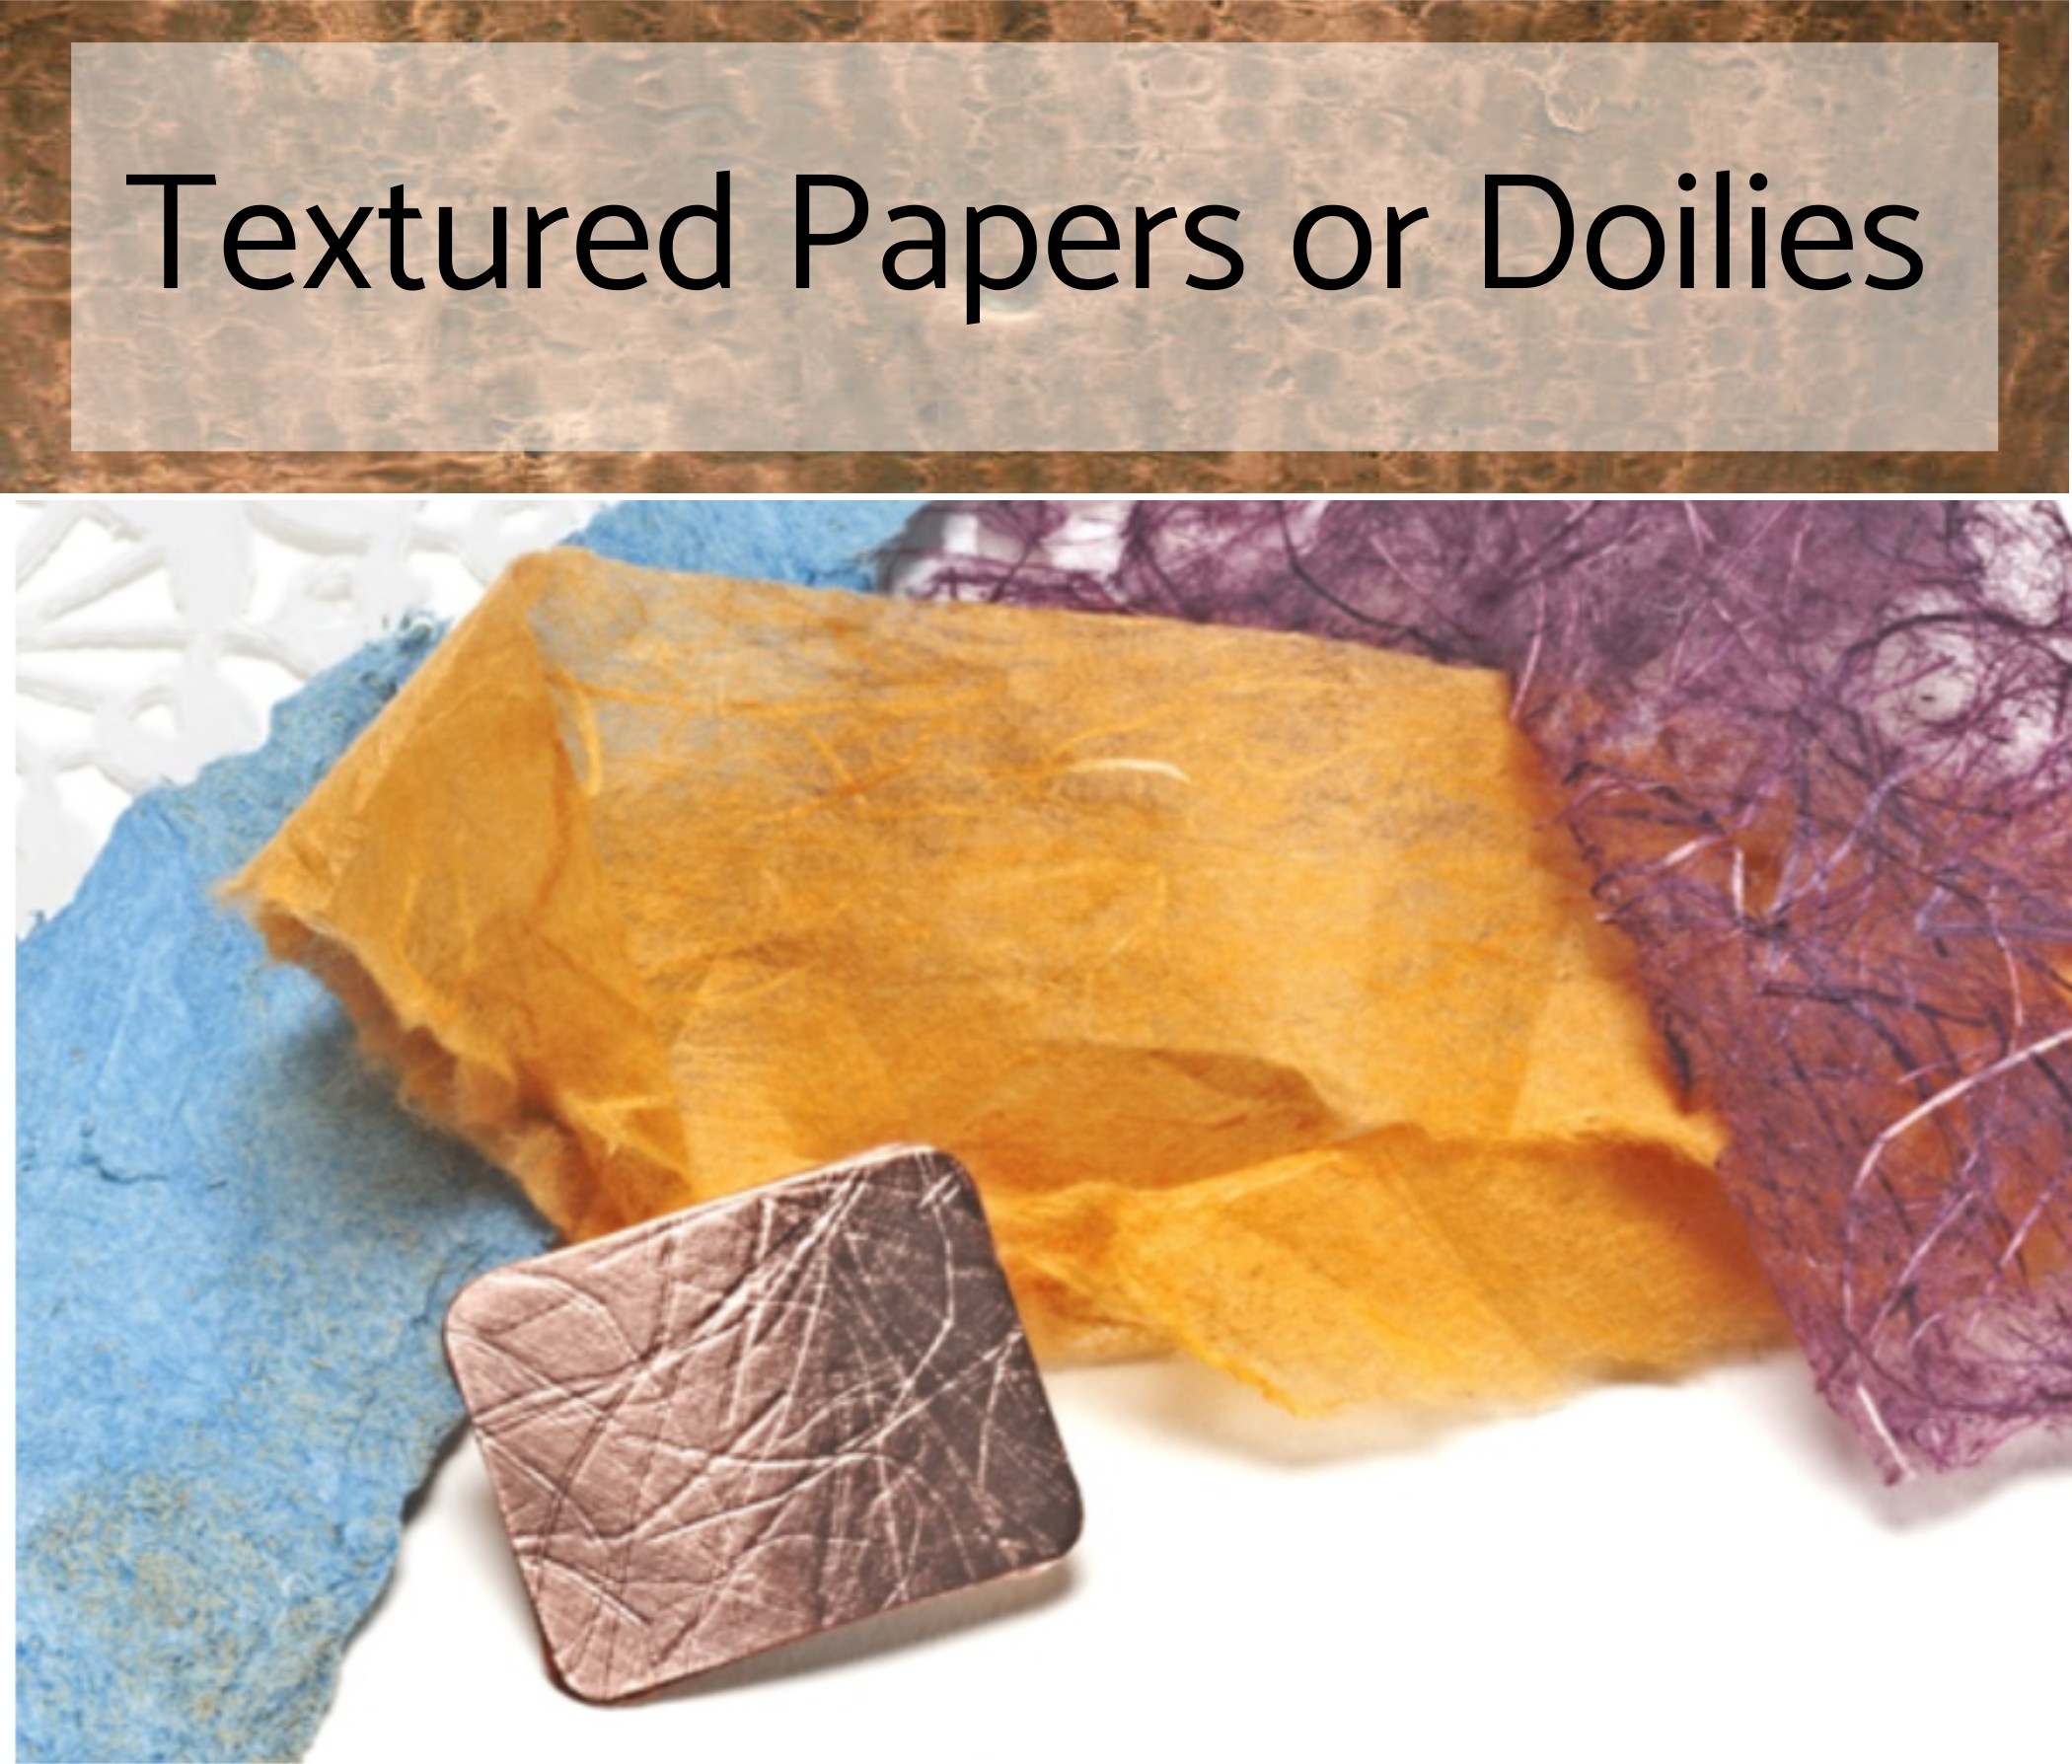 Textured papers or doilies